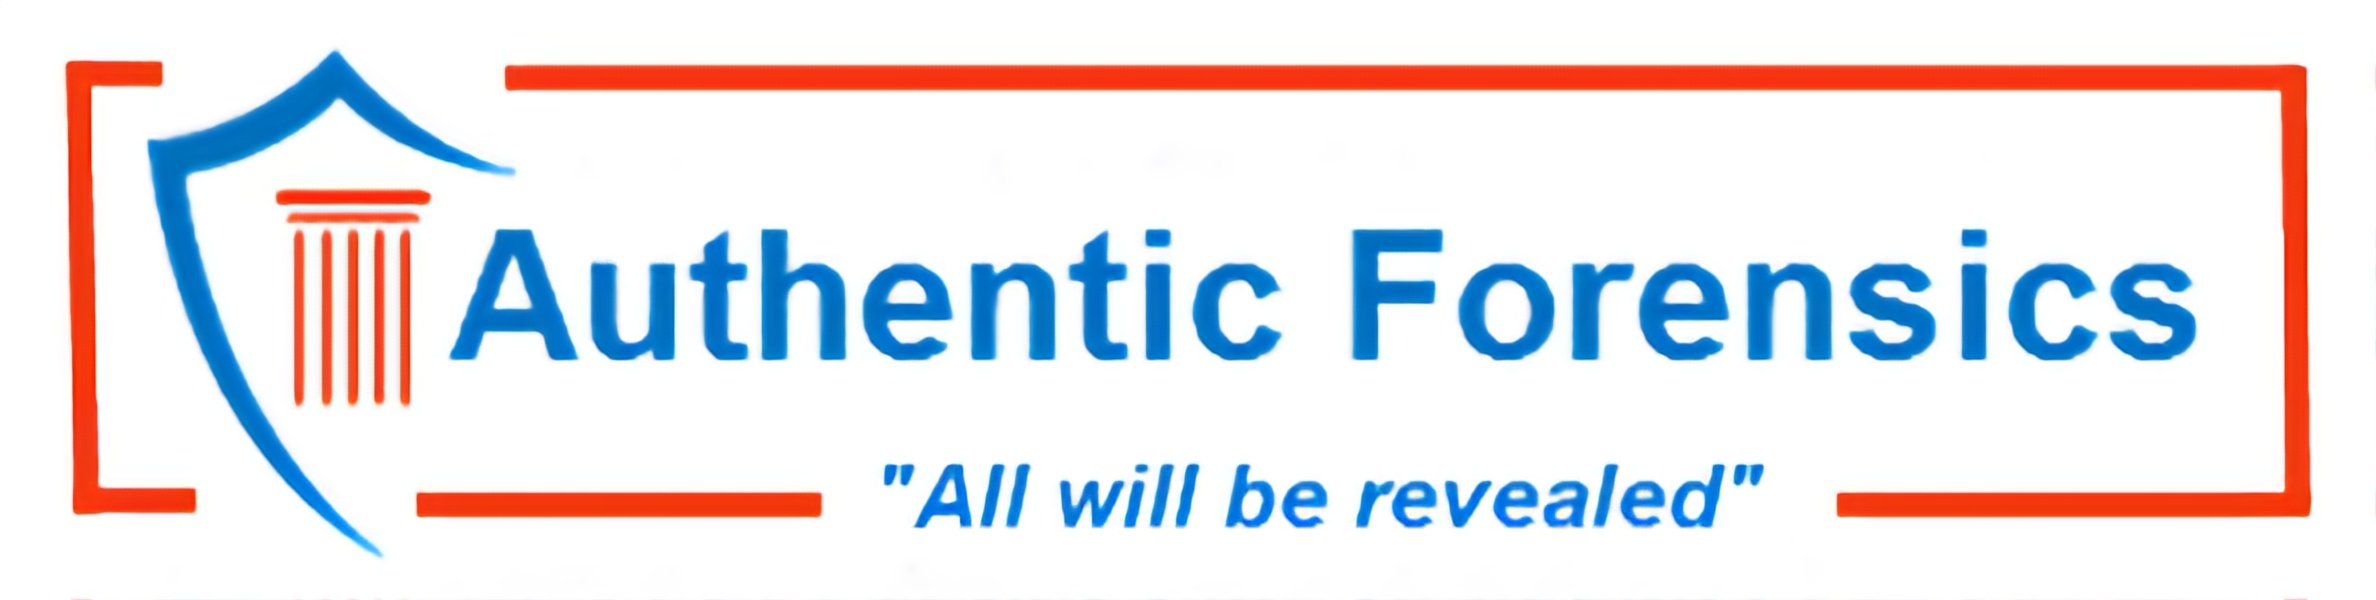 The Authentic Forensics company logo.